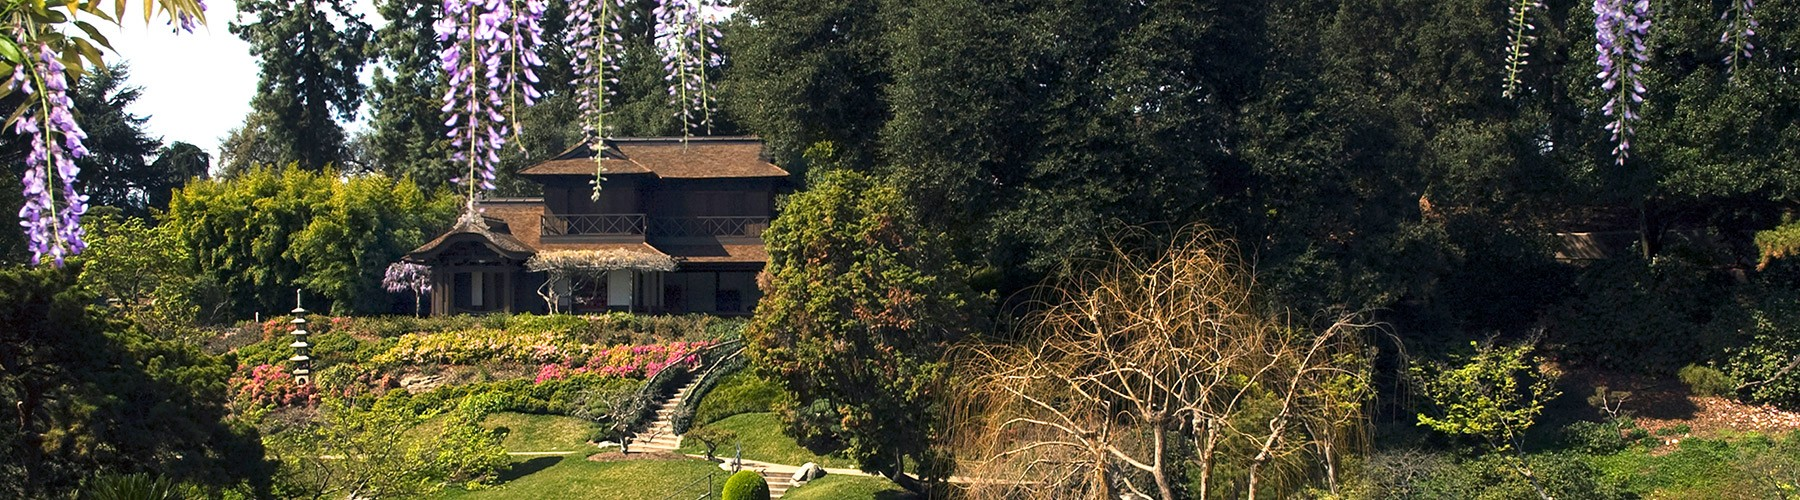 Japanese Garden The Huntington